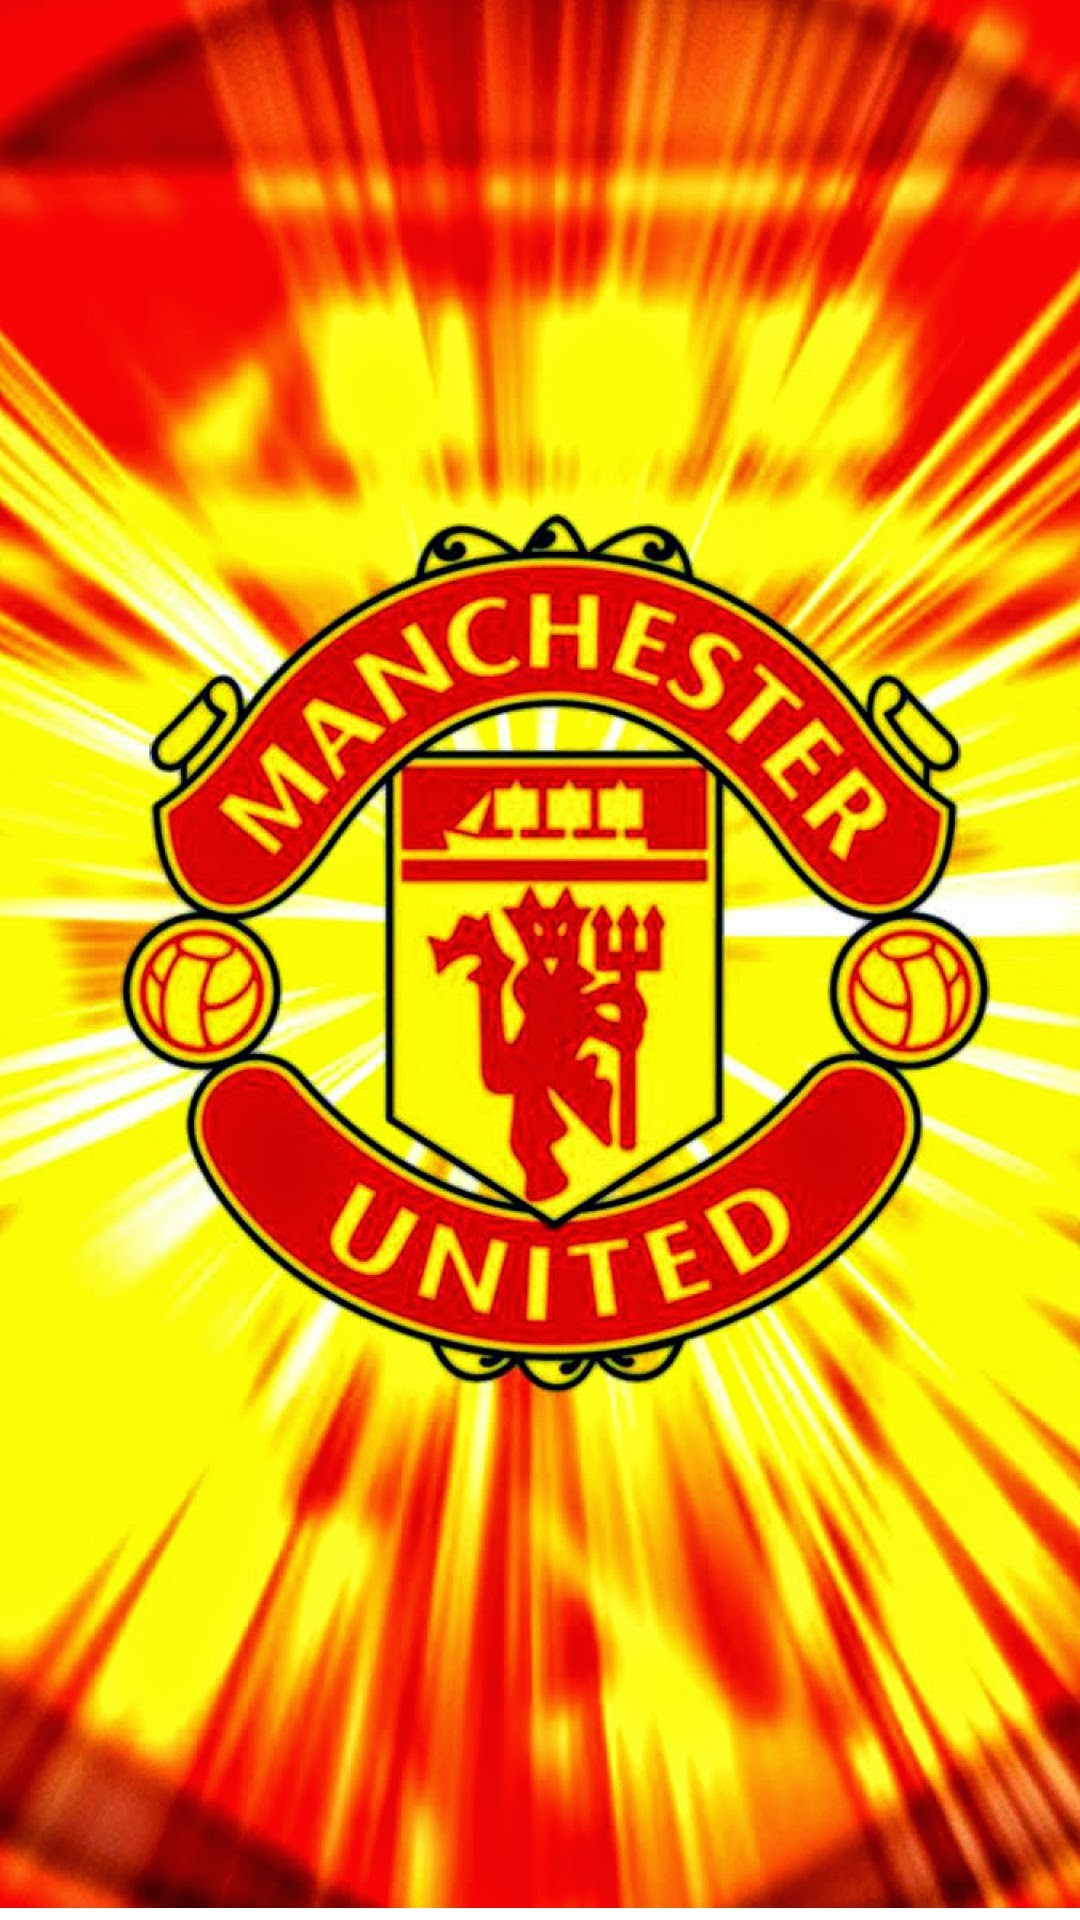 1080x1920 Apple iPhone 6 Plus HD Wallpaper Collection with Manchester United Logo,  see.